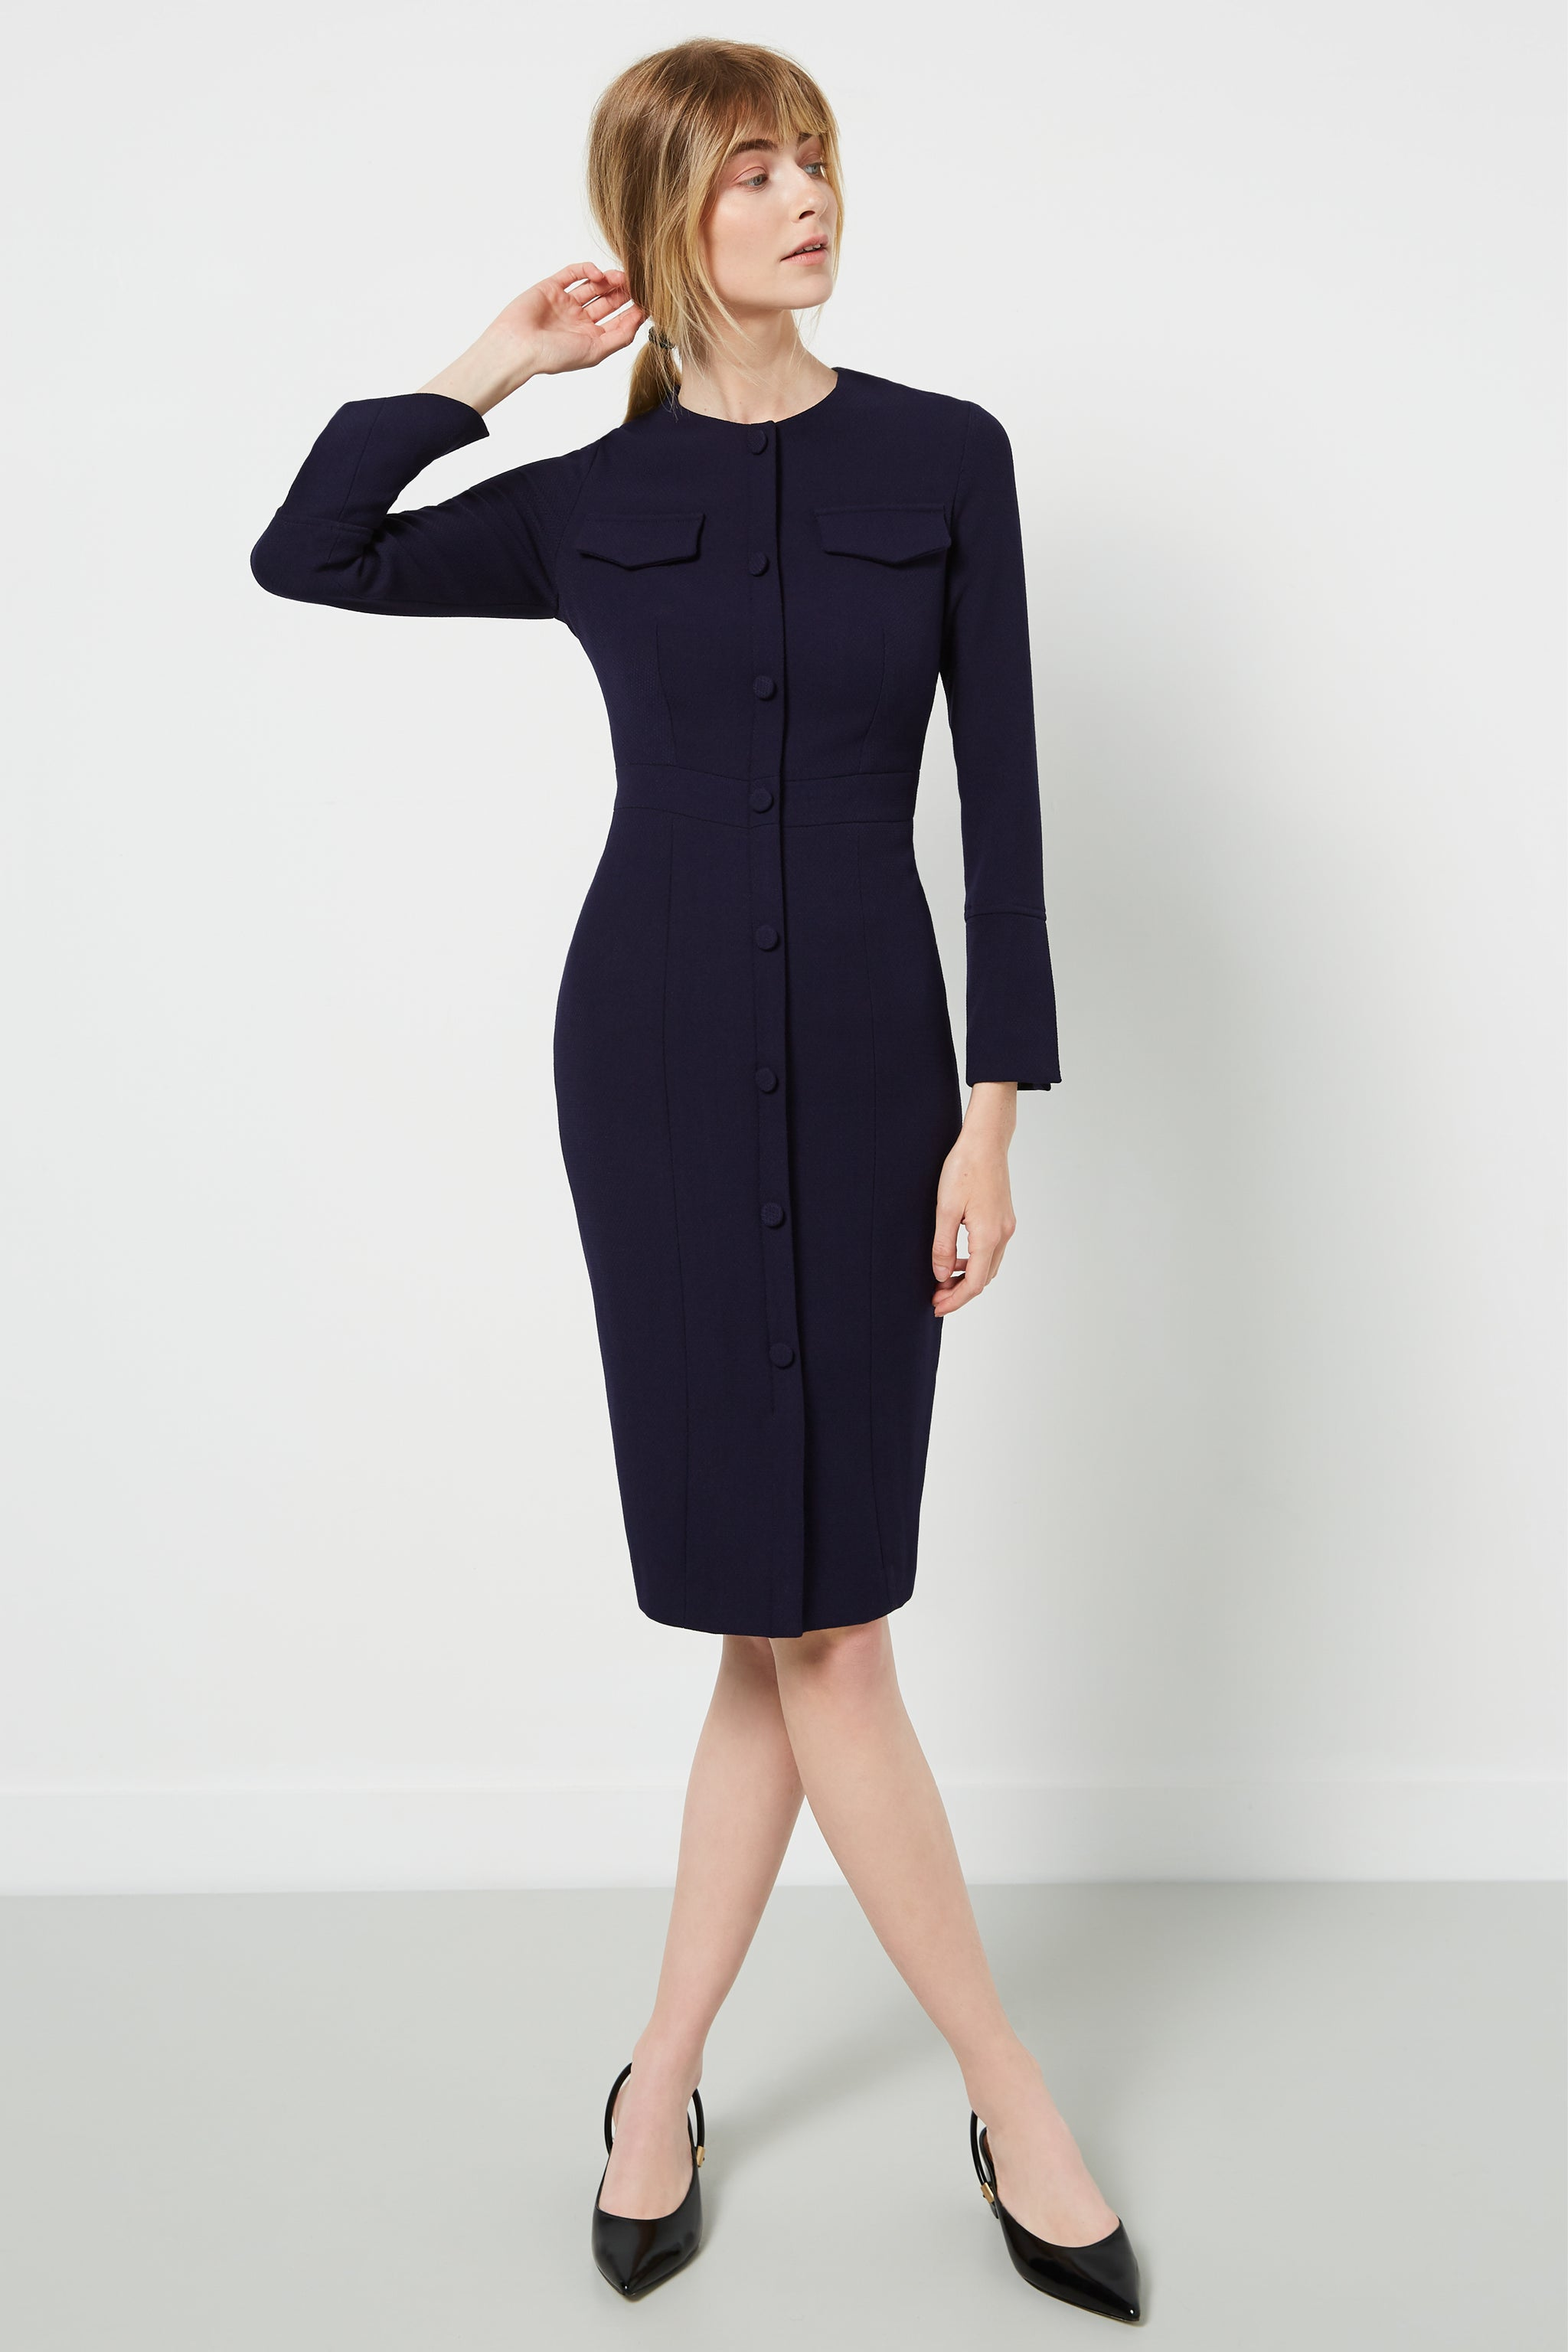 Maddox Navy Boucle Dress